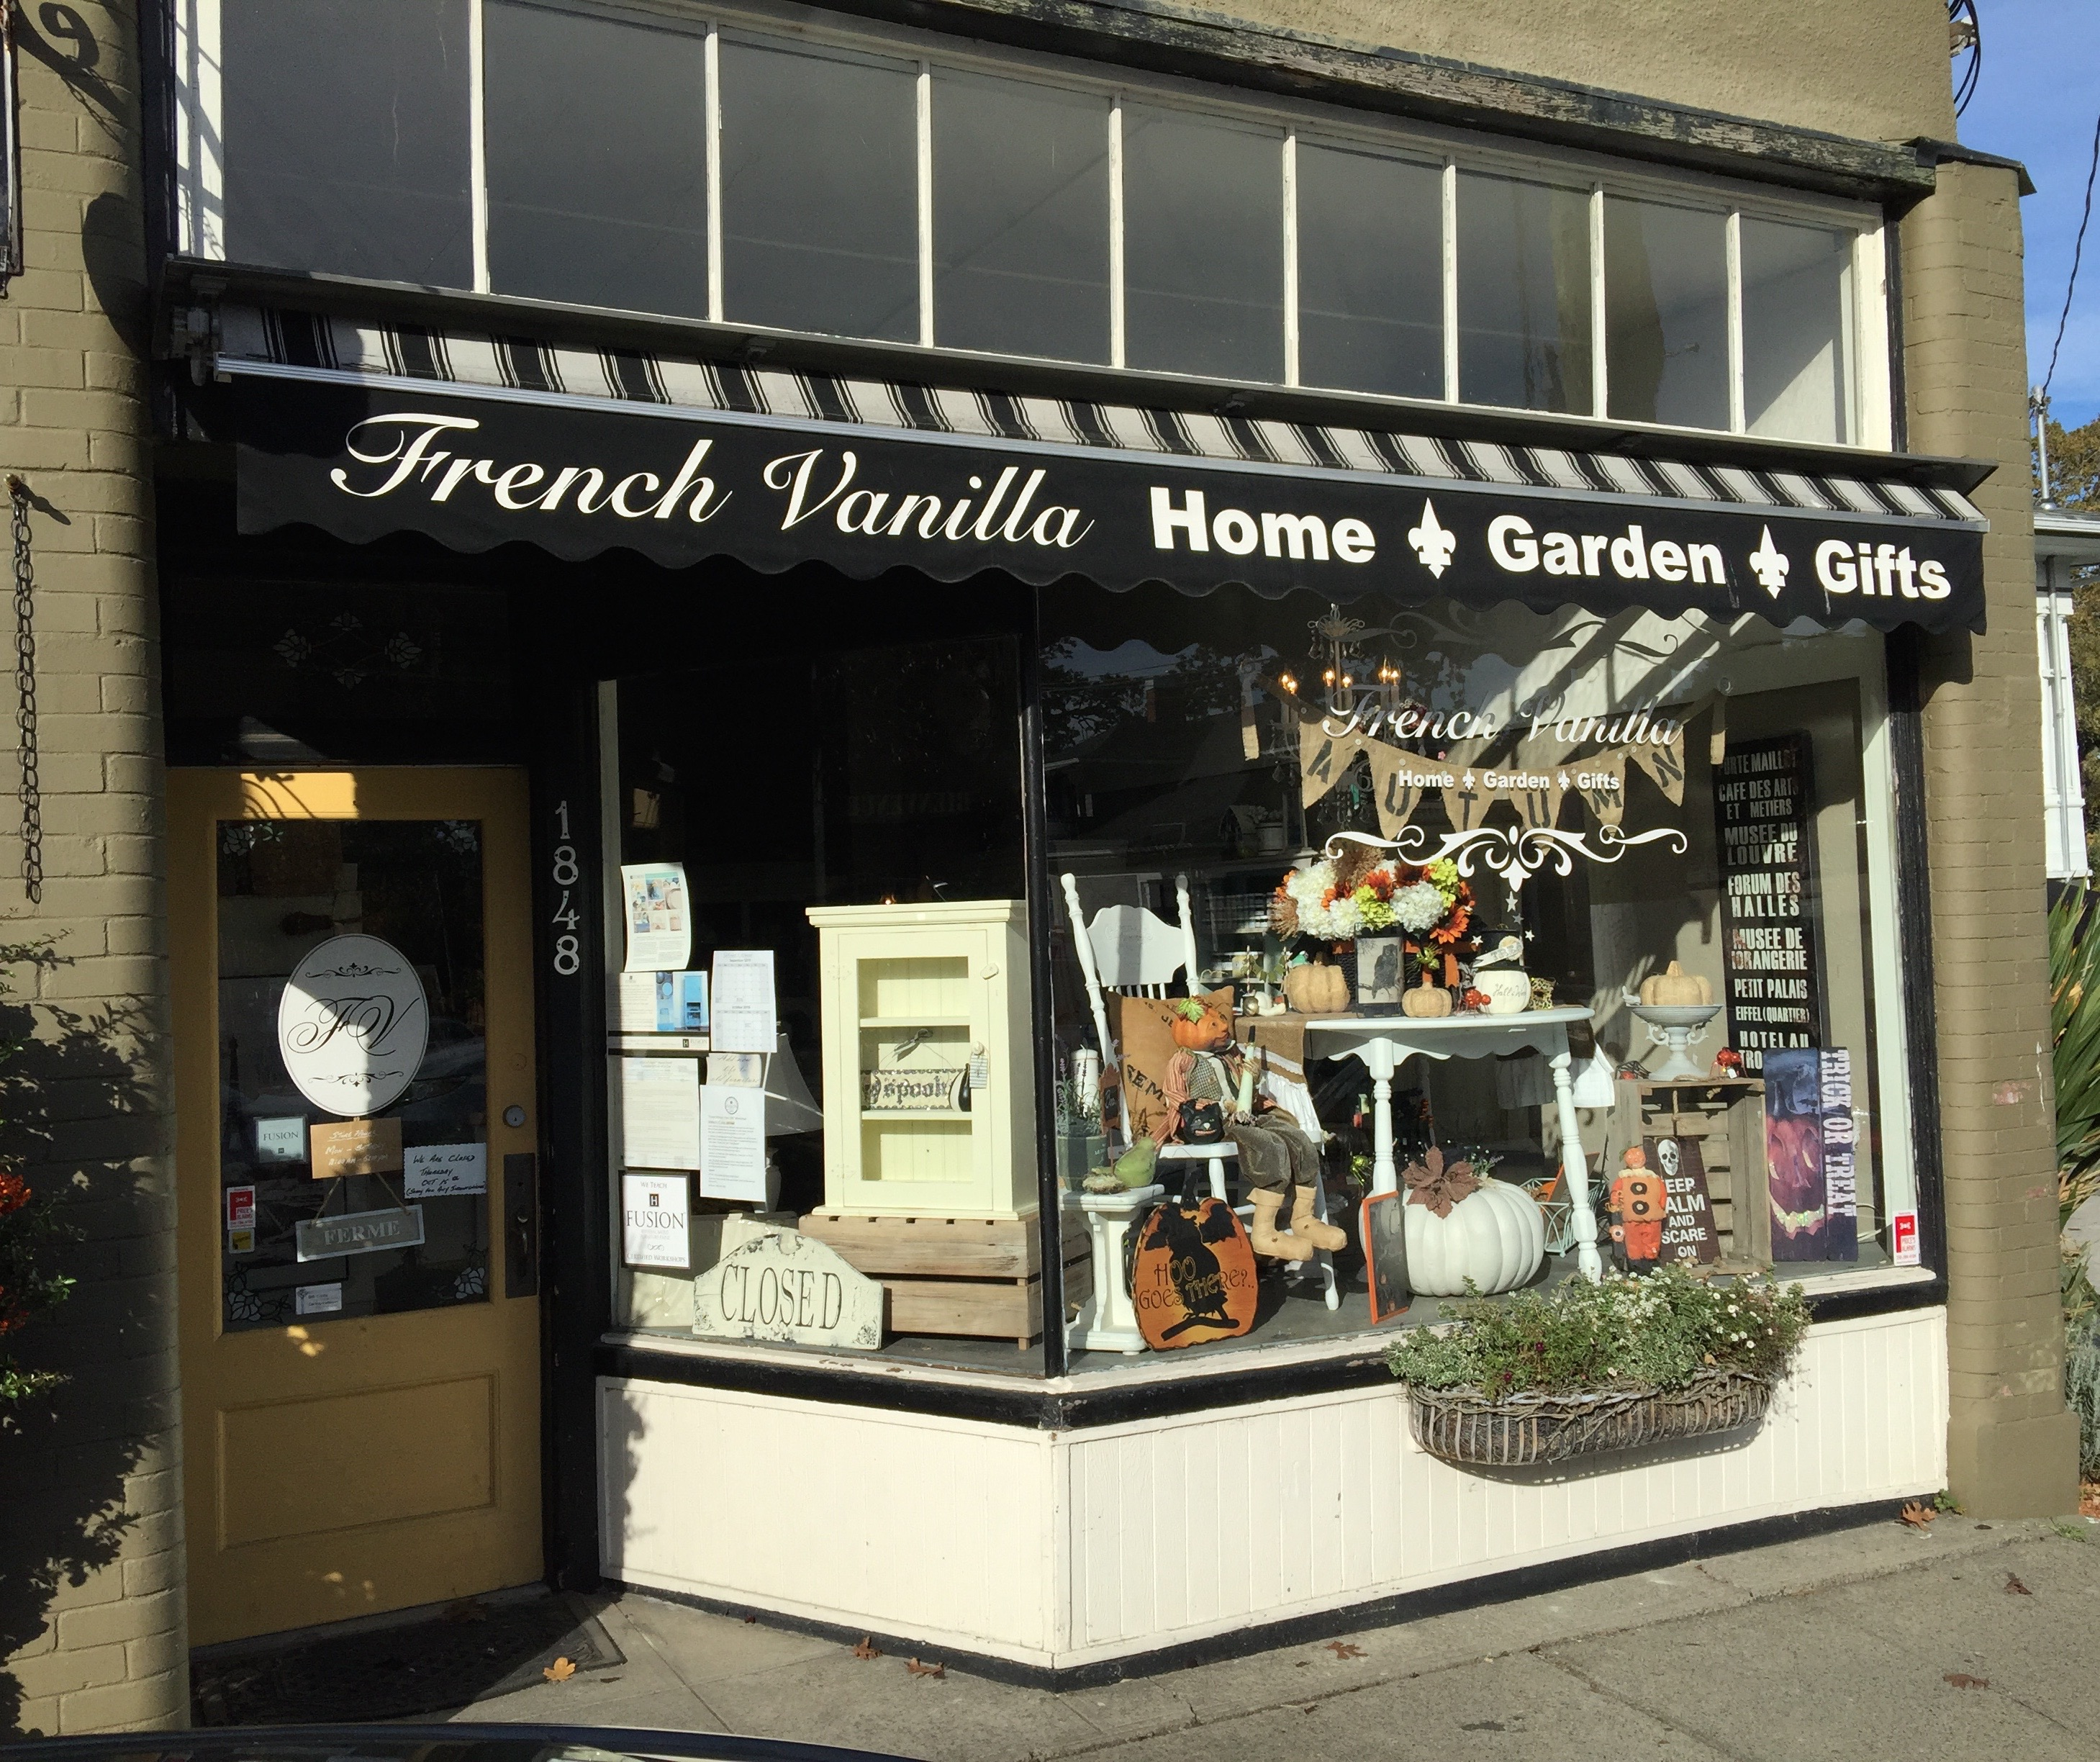 I Visited One Of My Favourite Stores Today, French Vanilla Home And Garden,  And Had A Delightful Chat With The Owner Sheila Stone. Pictures